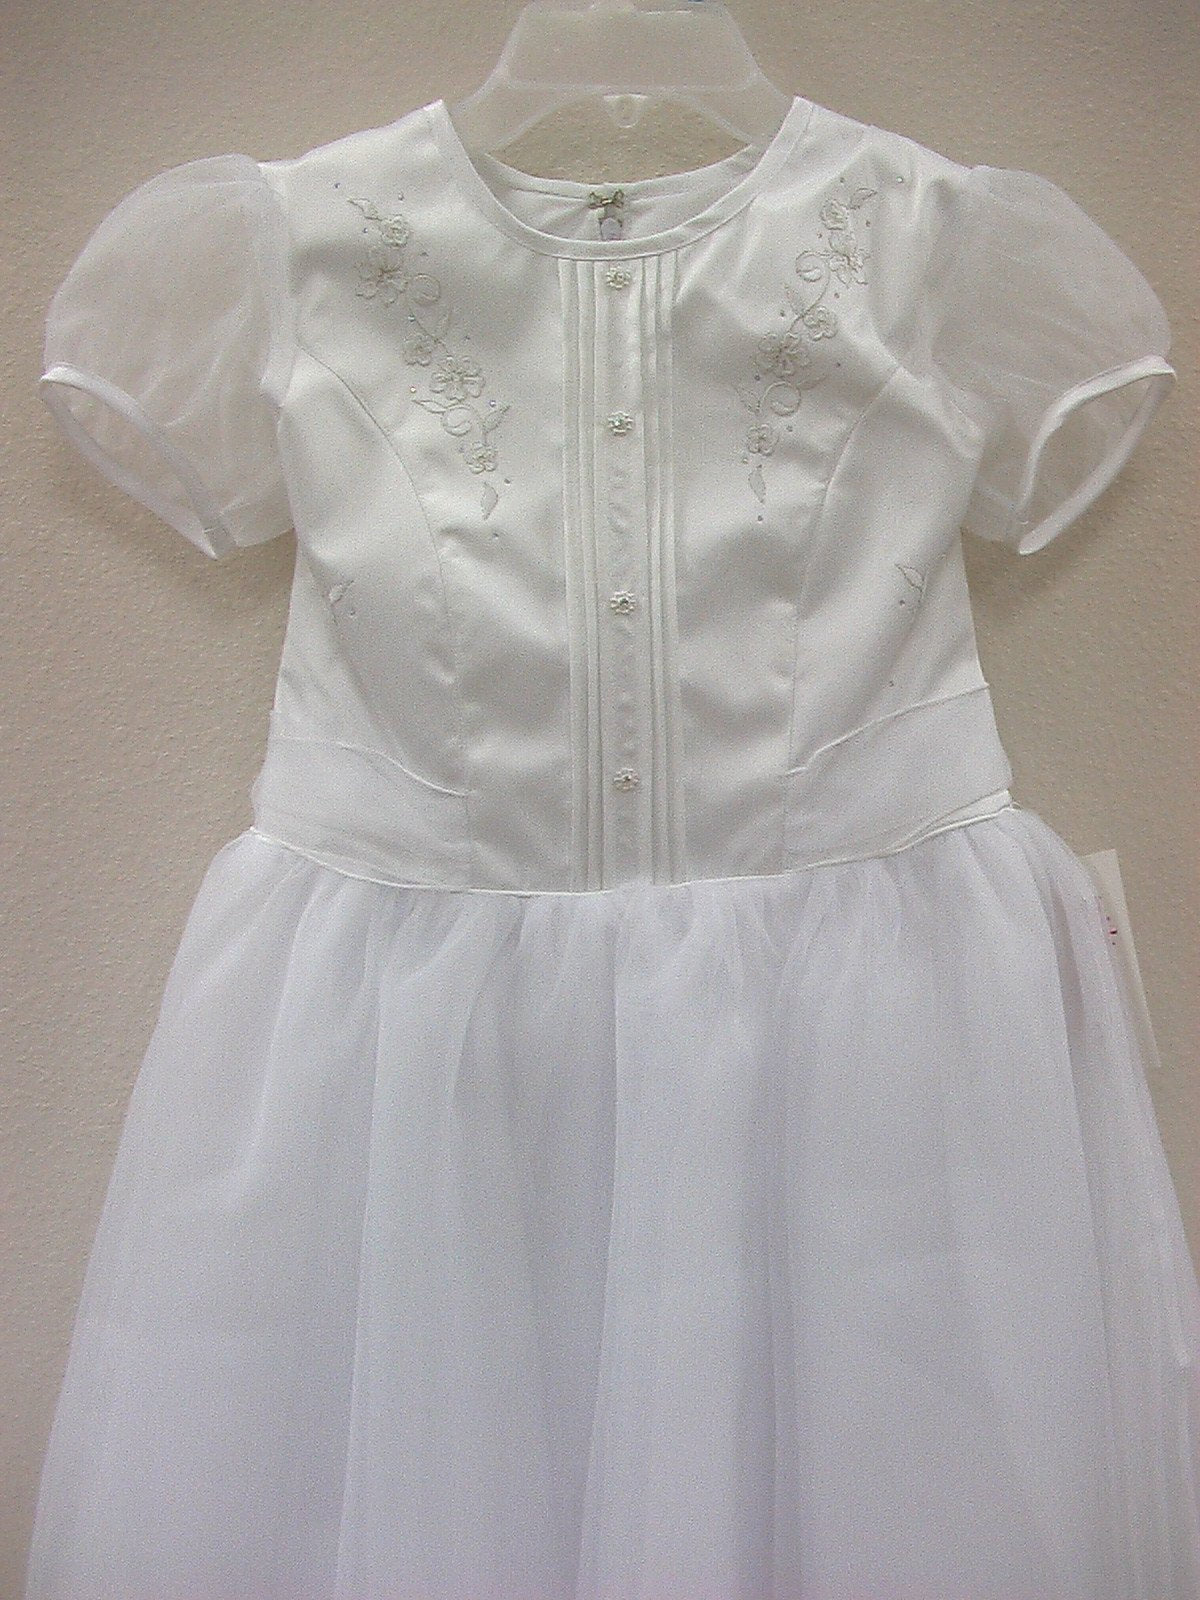 Nikolina 533 White size 12 In Stock Communion Dress-NEW - Tom's Bridal